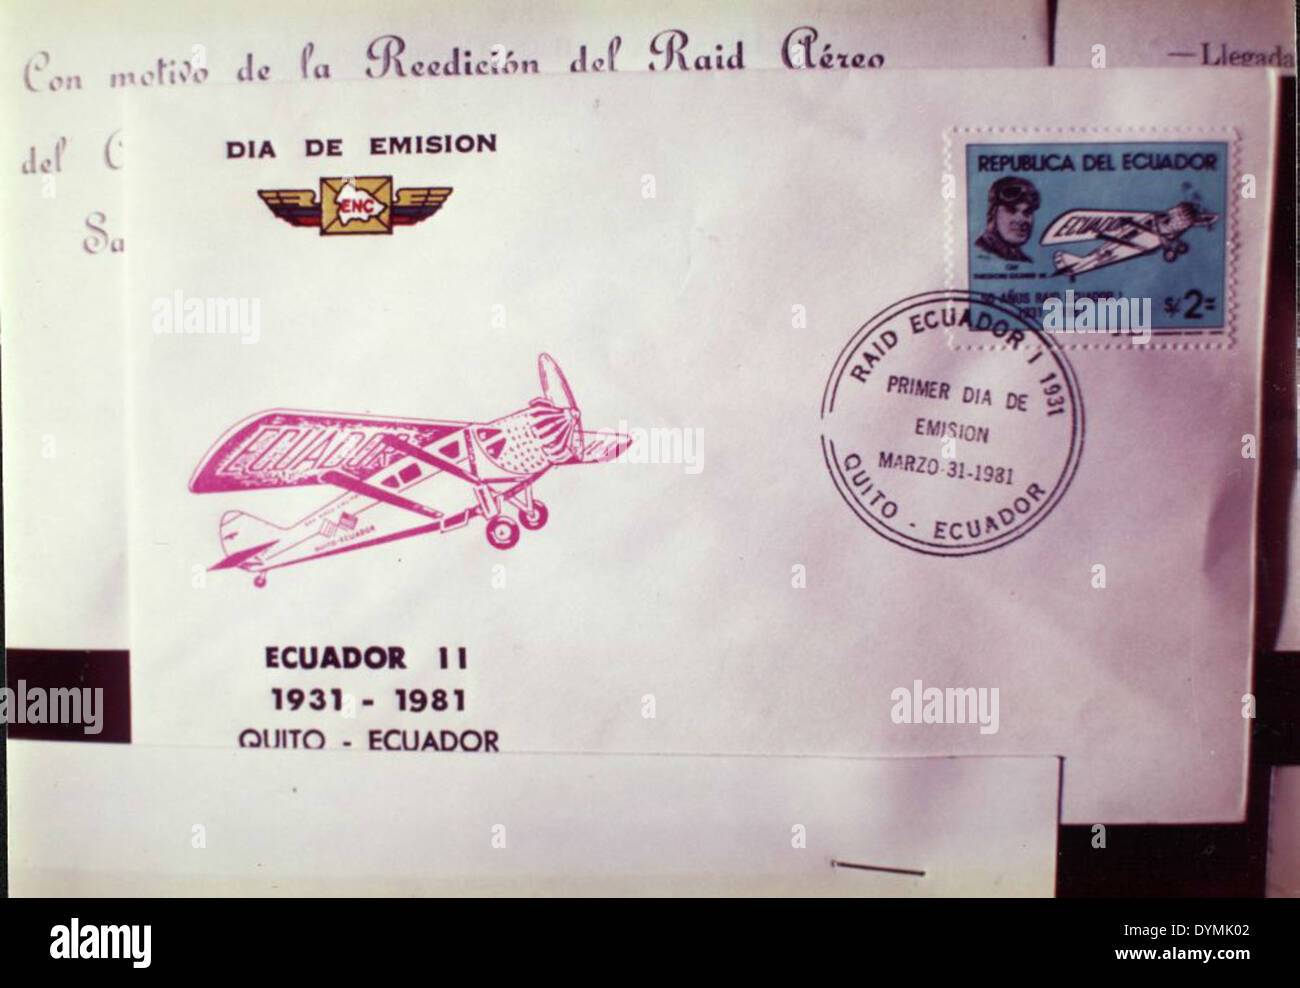 Envelope with stamps from Ecuador - Stock Image